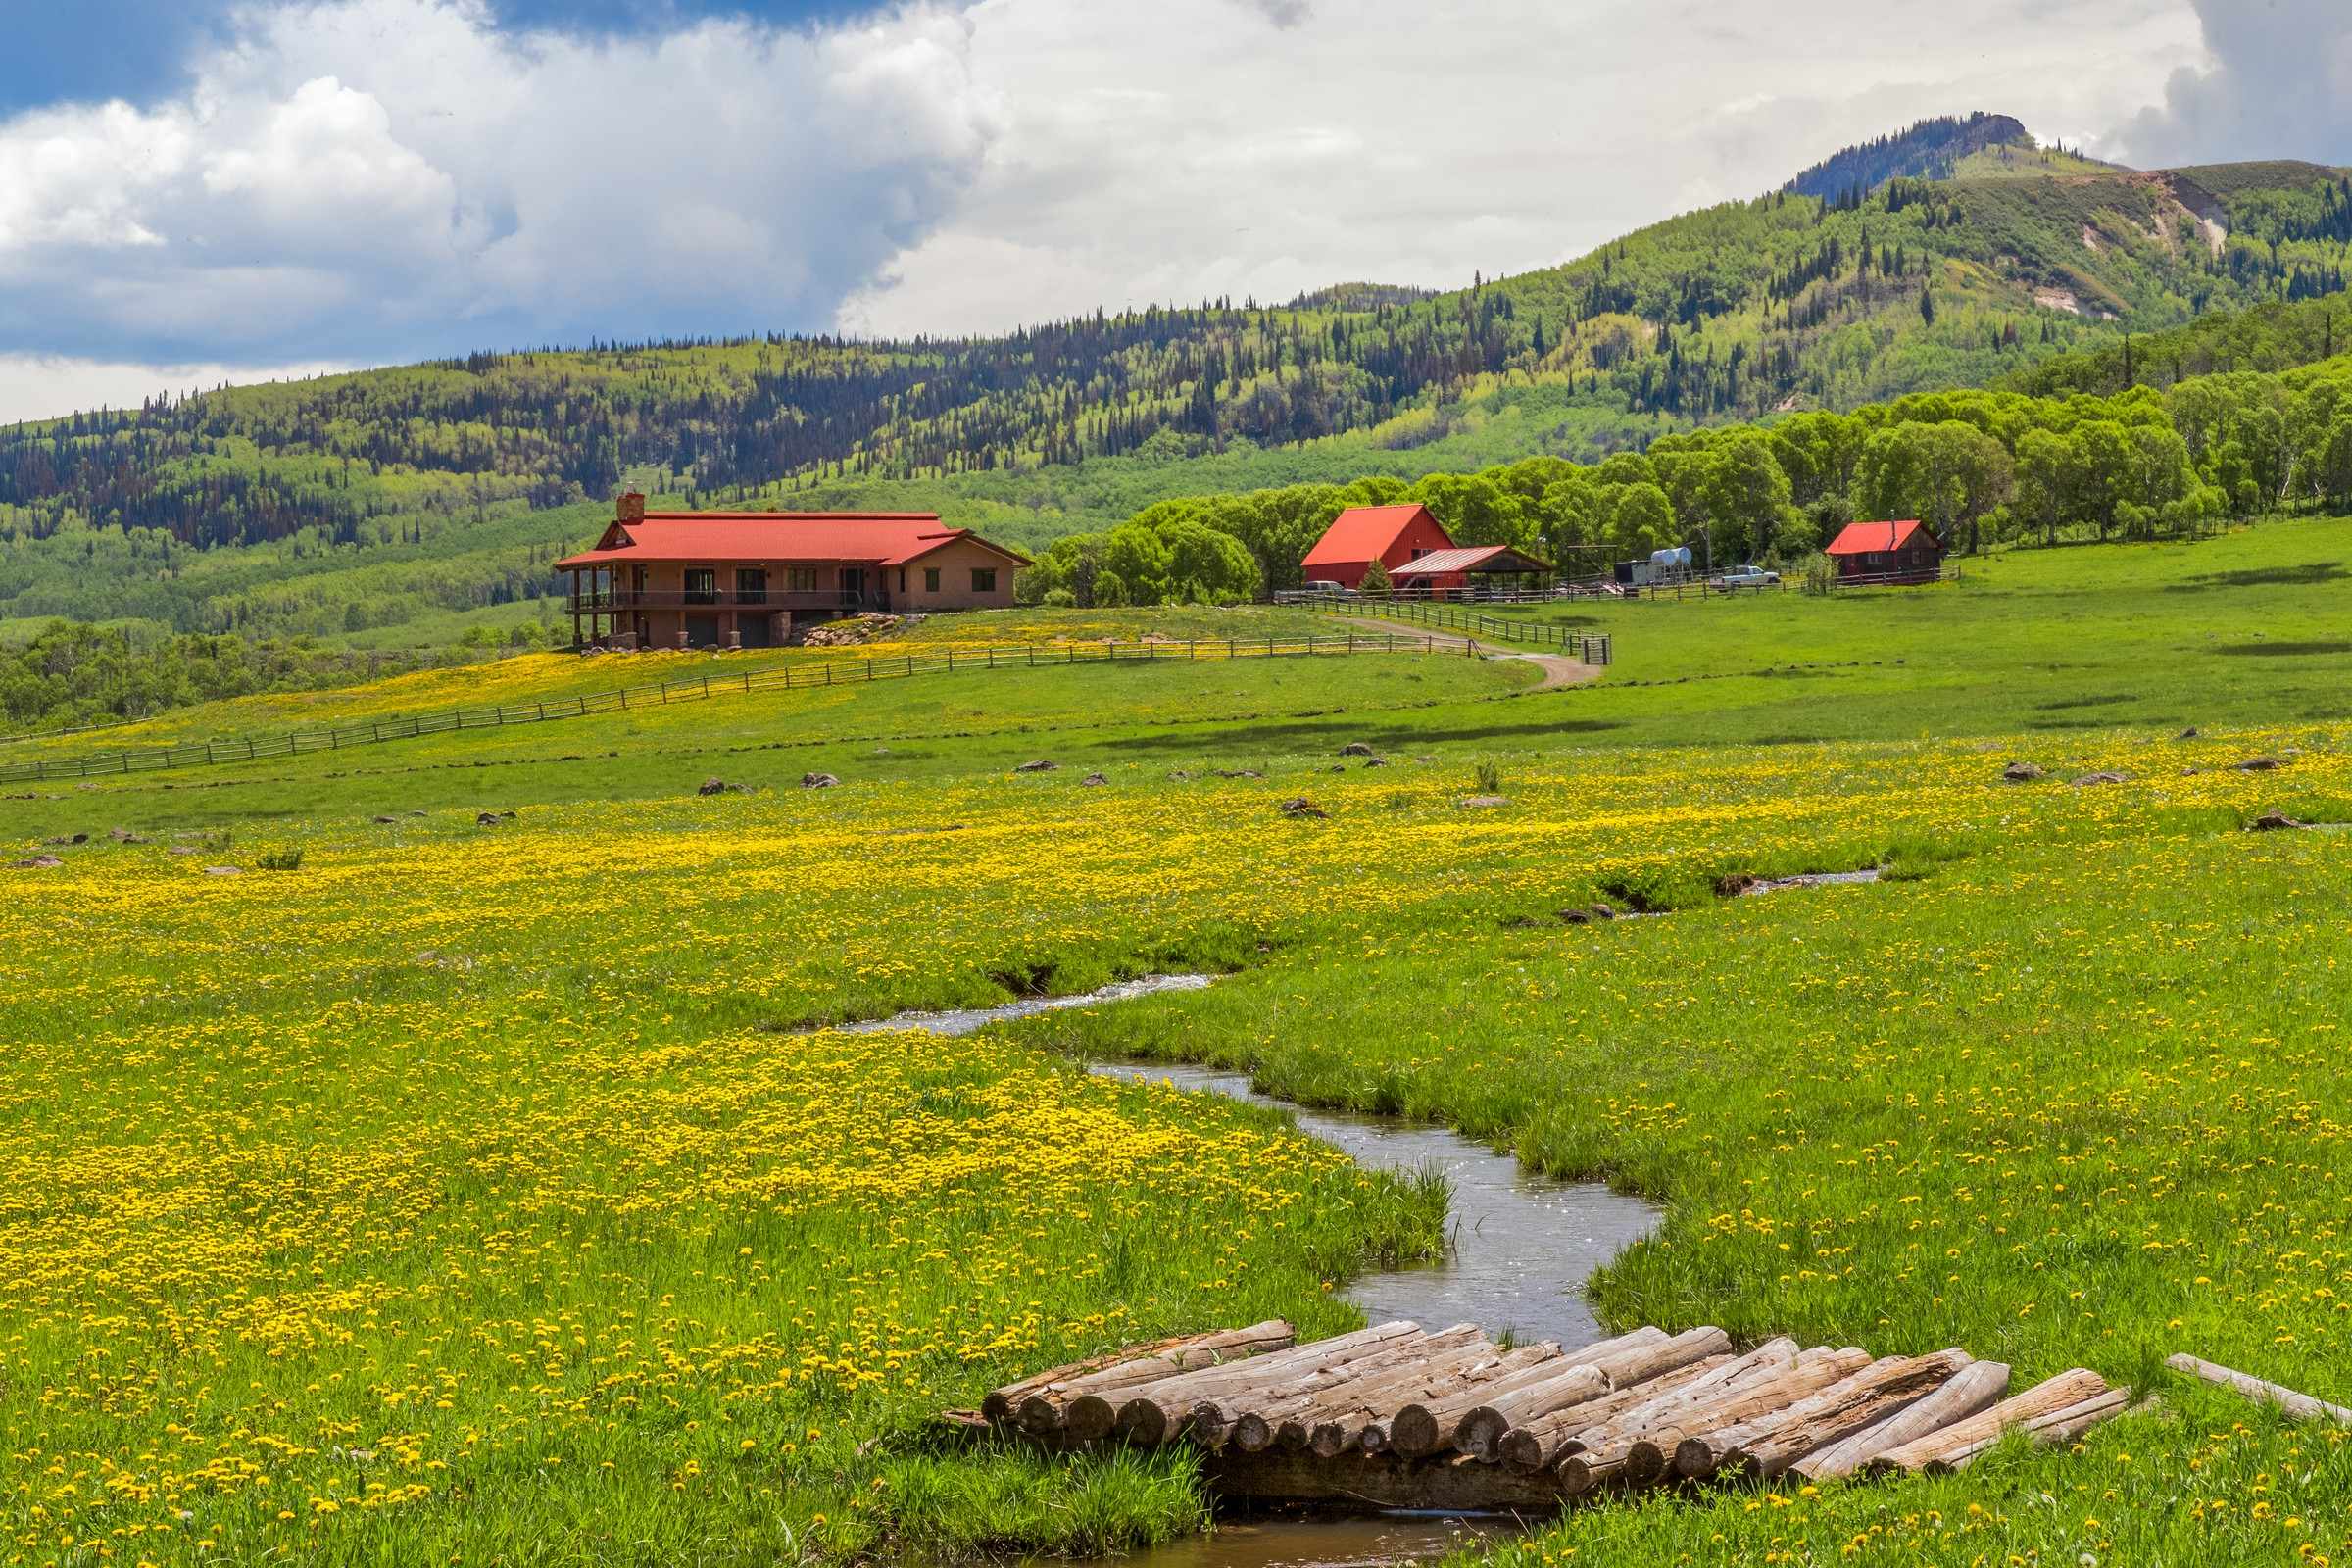 Farm / Ranch / Plantation for Sale at Slater Creek Ranch 7195 County Road 82 Slater, Colorado, 80653 United States